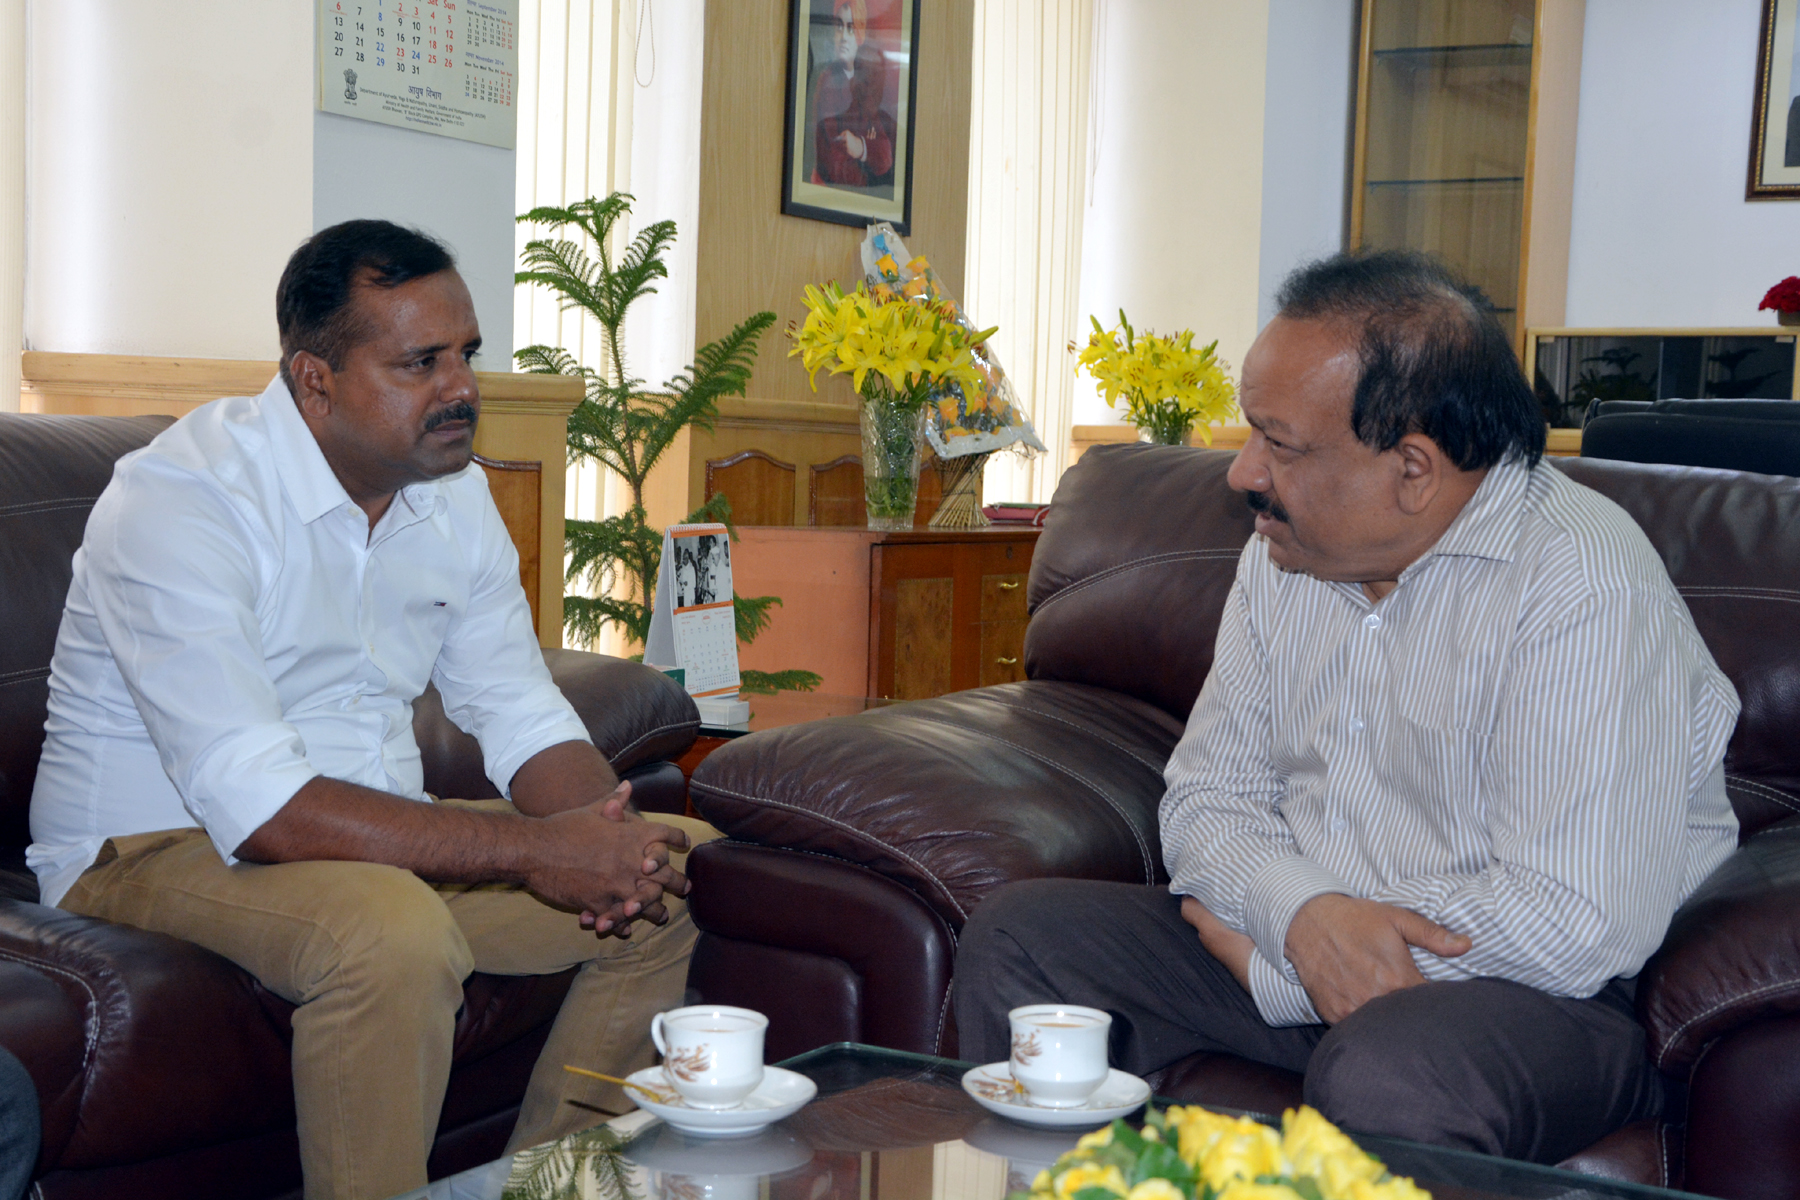 The Minister for Health and Family Welfare, Karnataka, Shri U.T. Khader called on the Union Minister for Health and Family Welfare, Dr. Harsh Vardhan at New Delhi today.